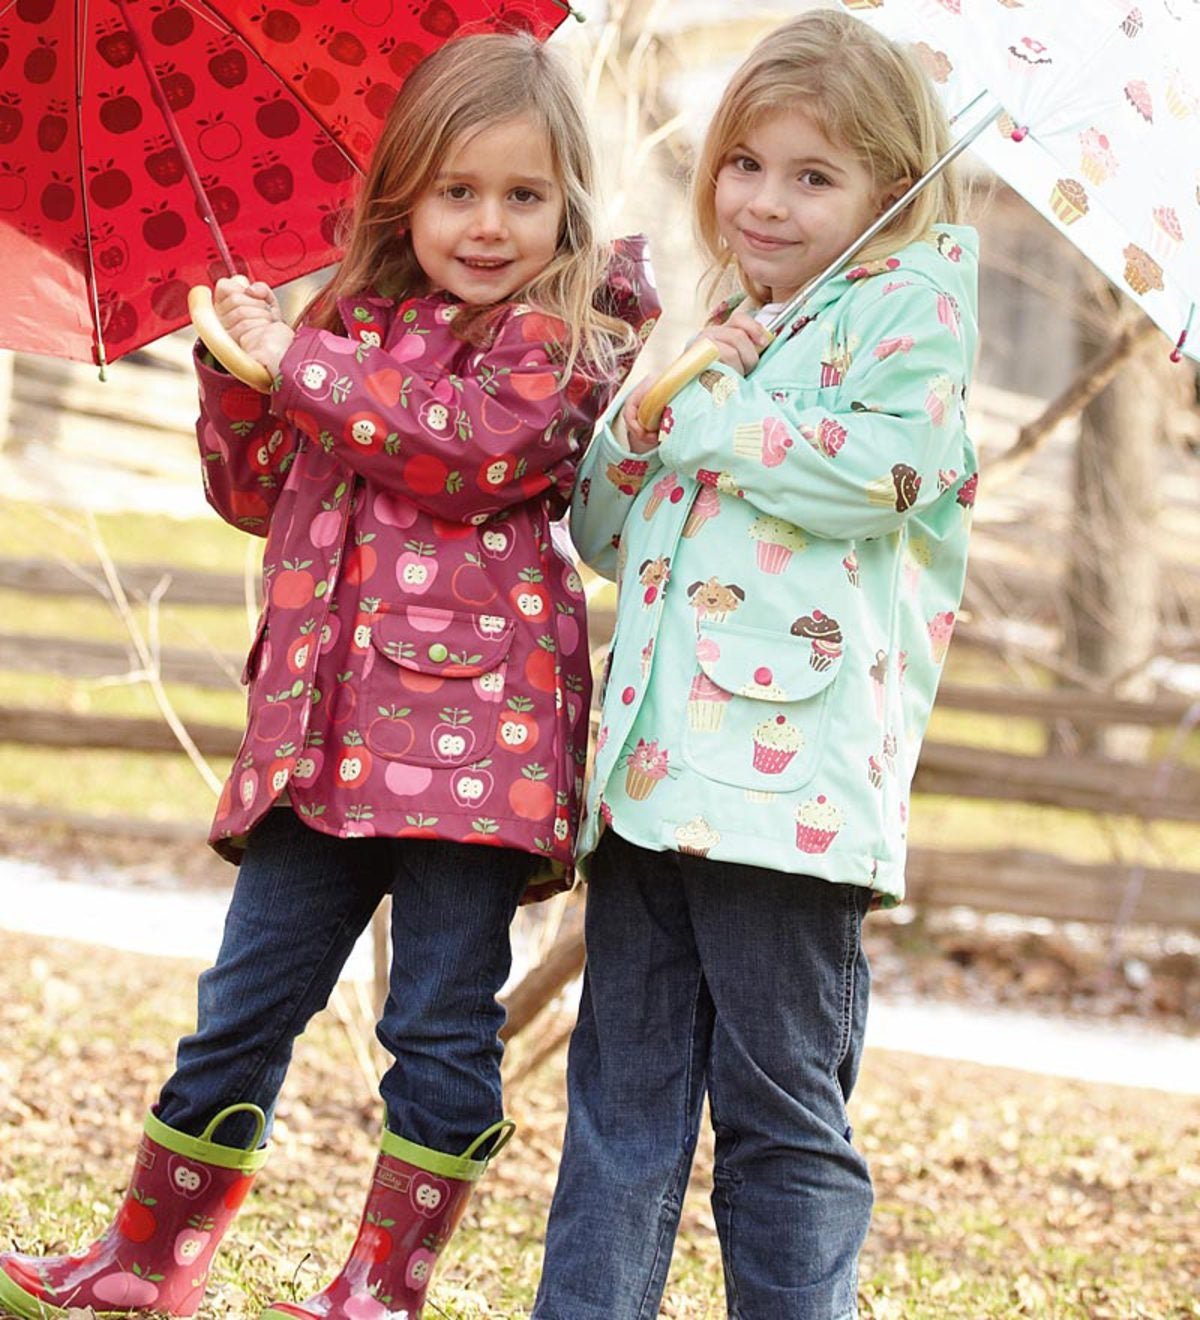 Hatley 100% Polyurethane Rain Jacket with Front Snaps, Pockets, and Super-Soft Cotton/Poly Terry Lining for Girls - 01